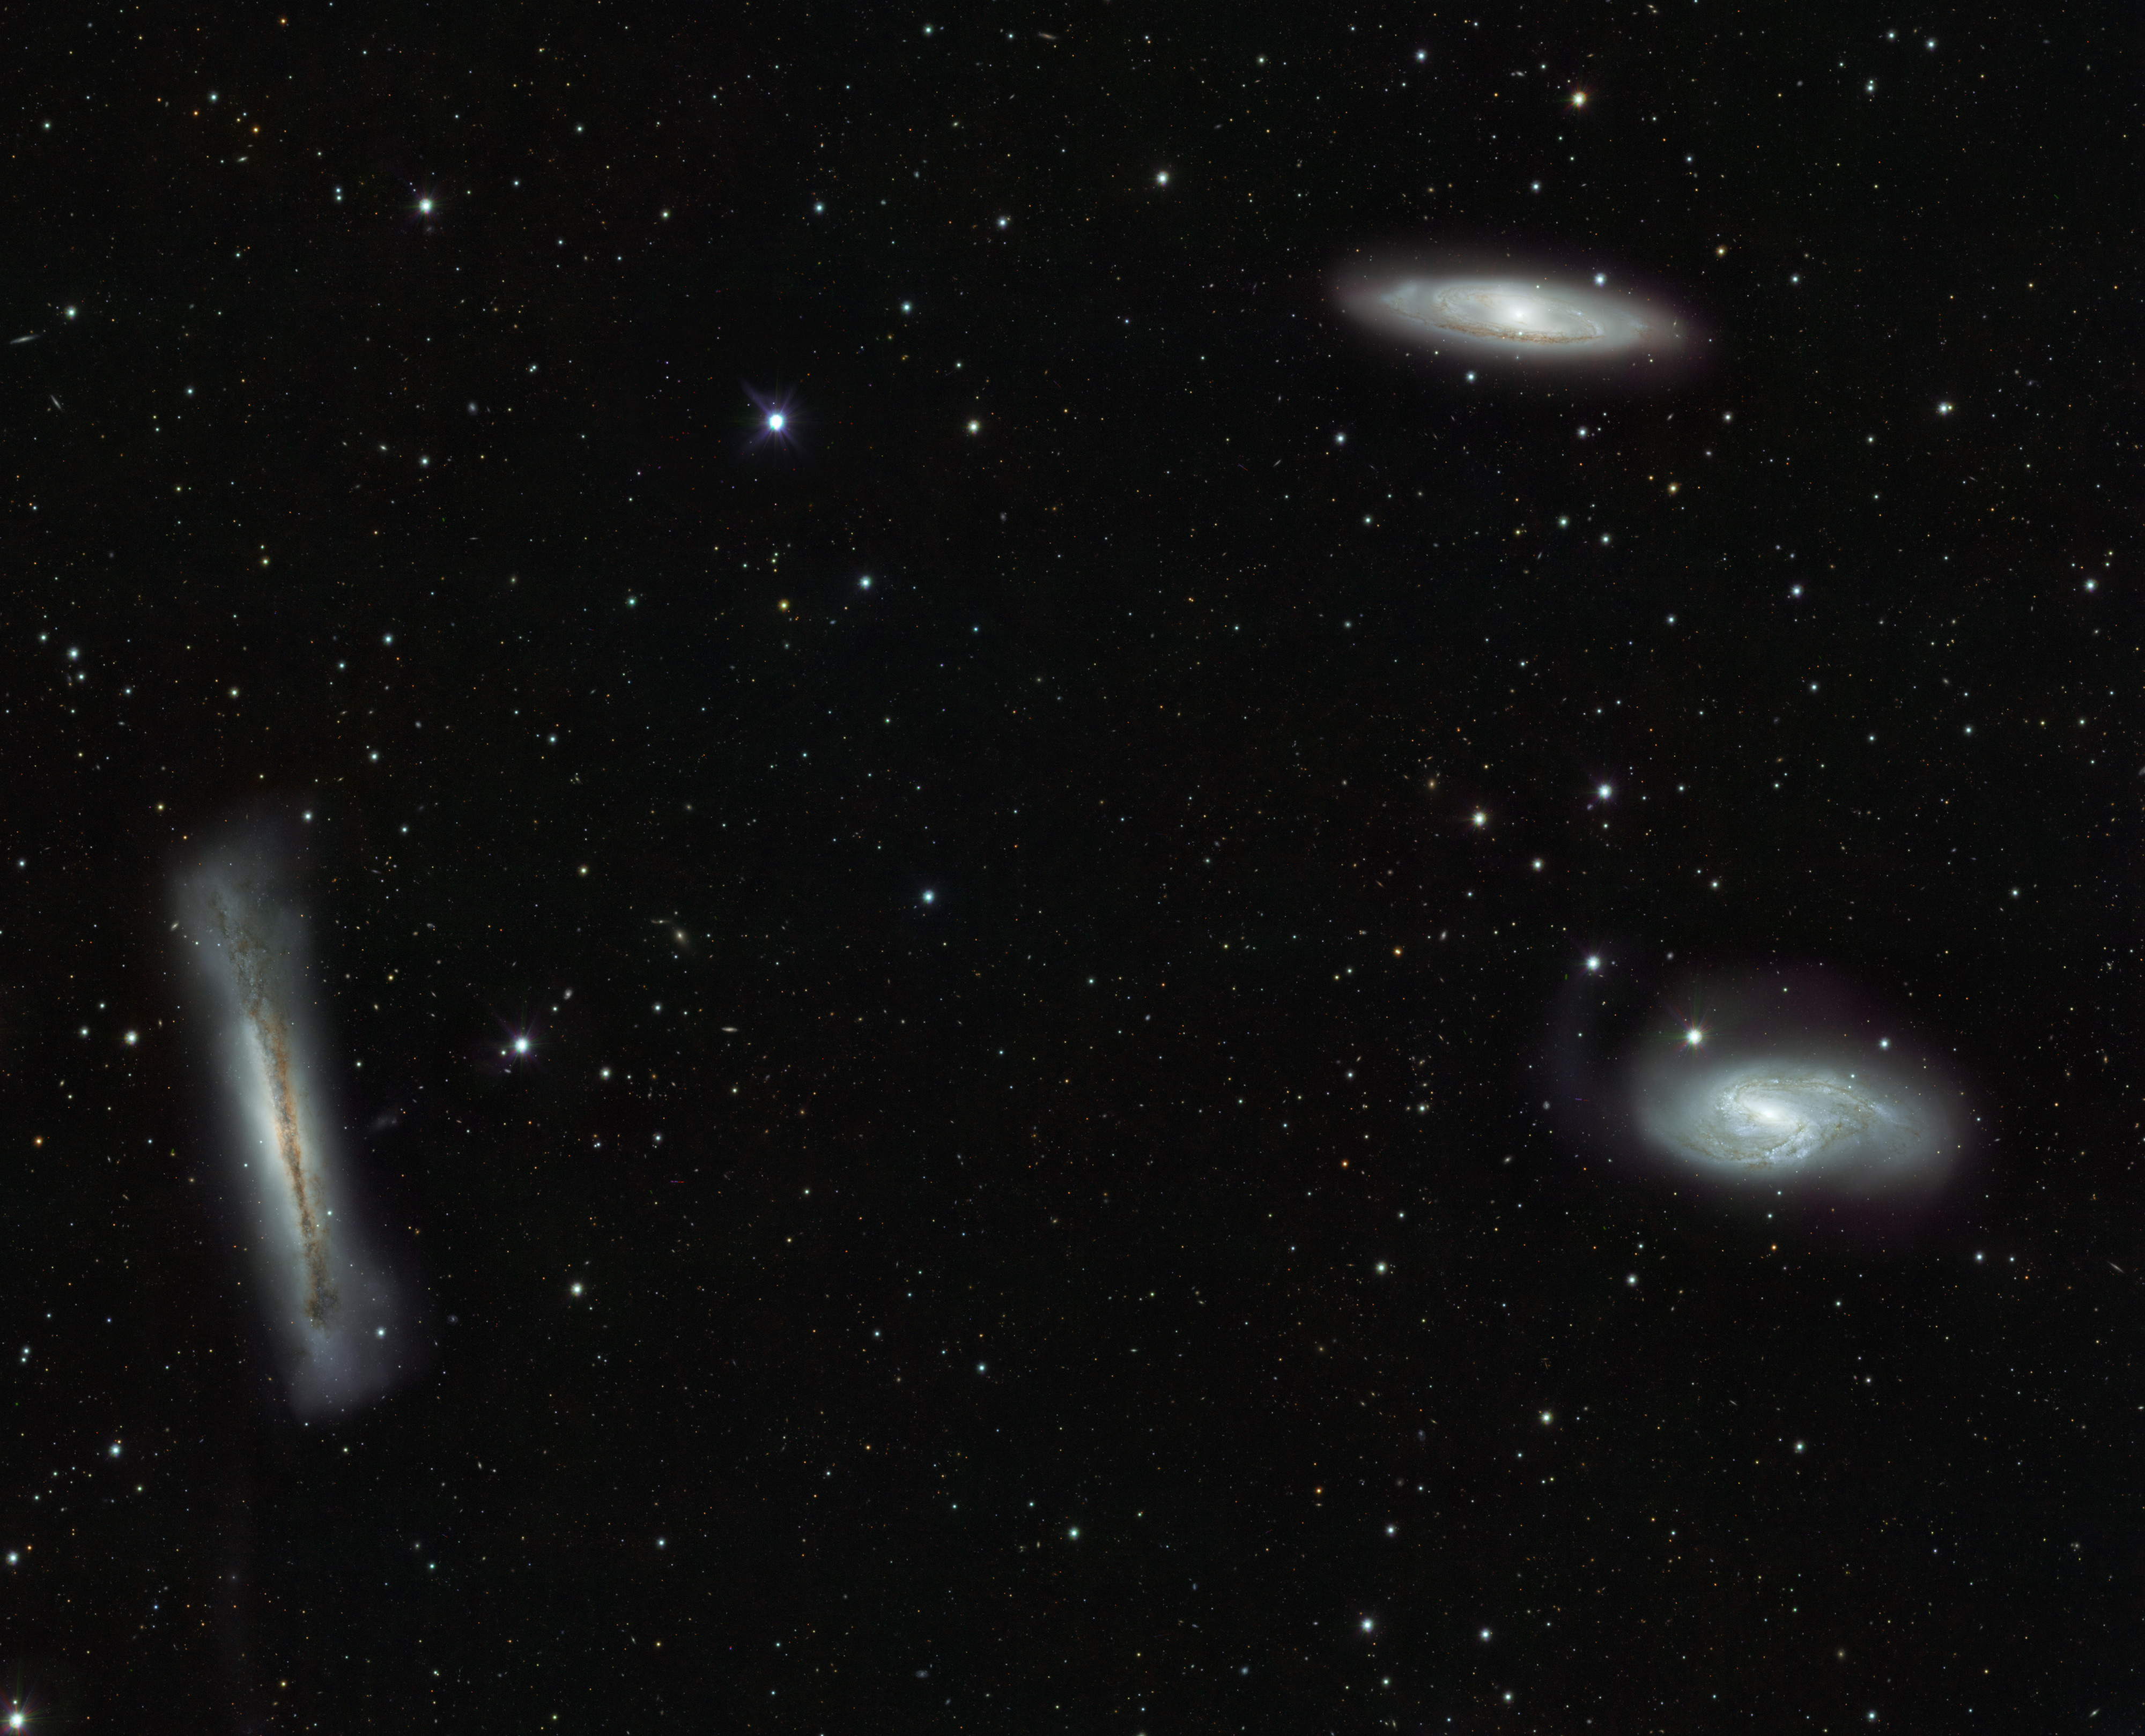 Stunning Portrait Of Galactic Triplets Bad Astronomy Bad Astronomy ~ Canaletas Para Agua Leroy Merlin